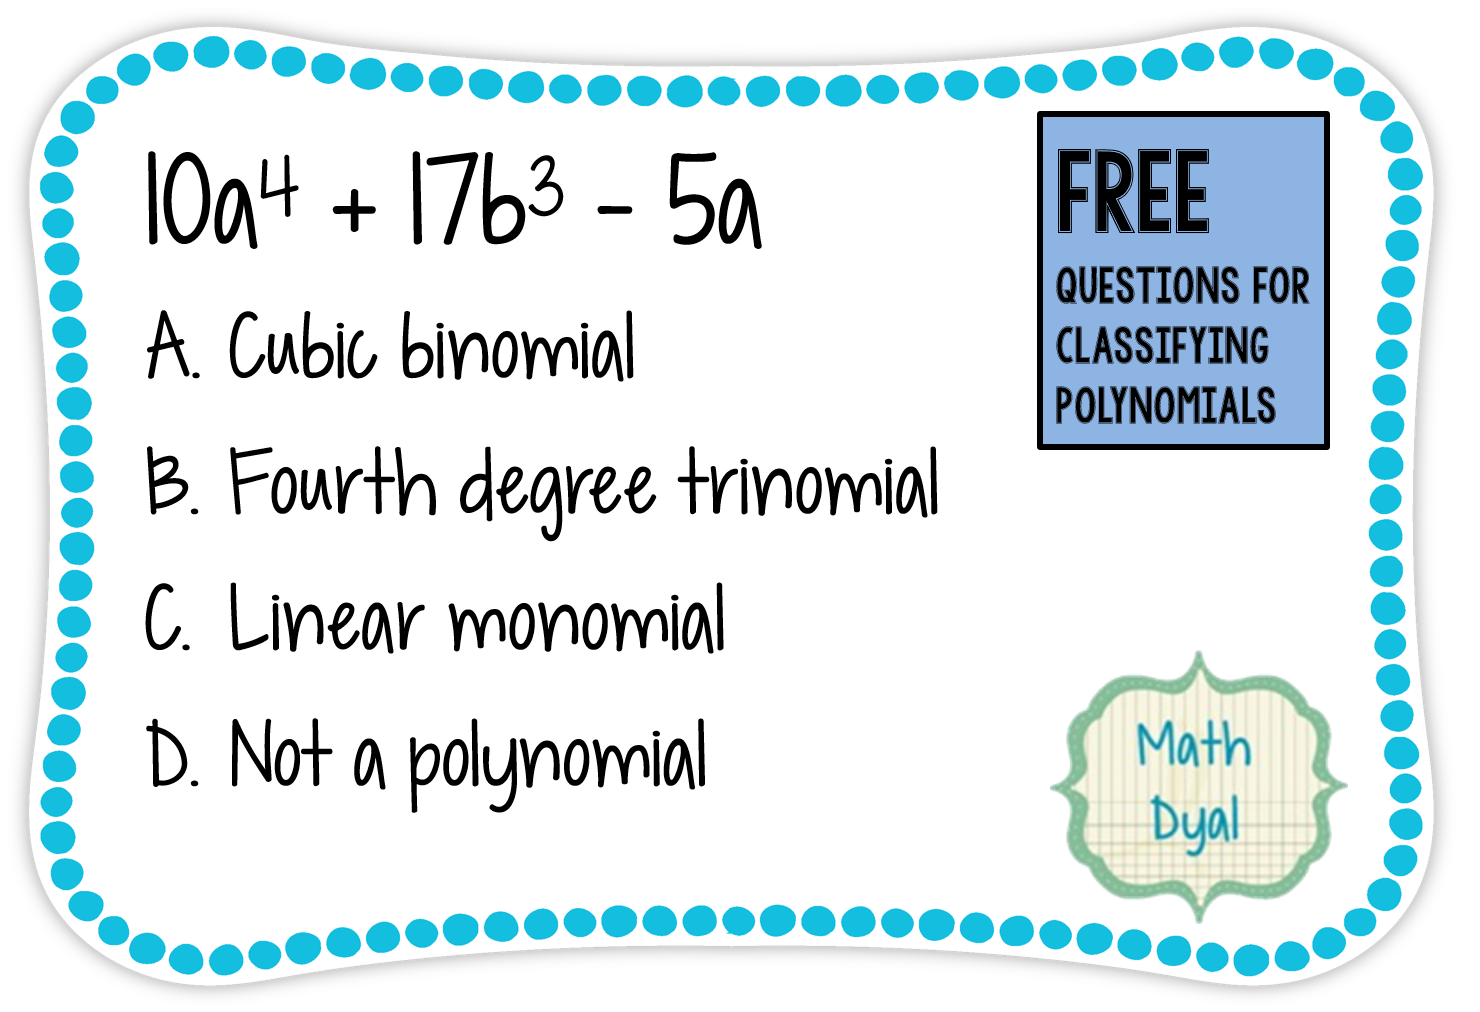 Free Multiple Choice Questions And Notes For Classifying